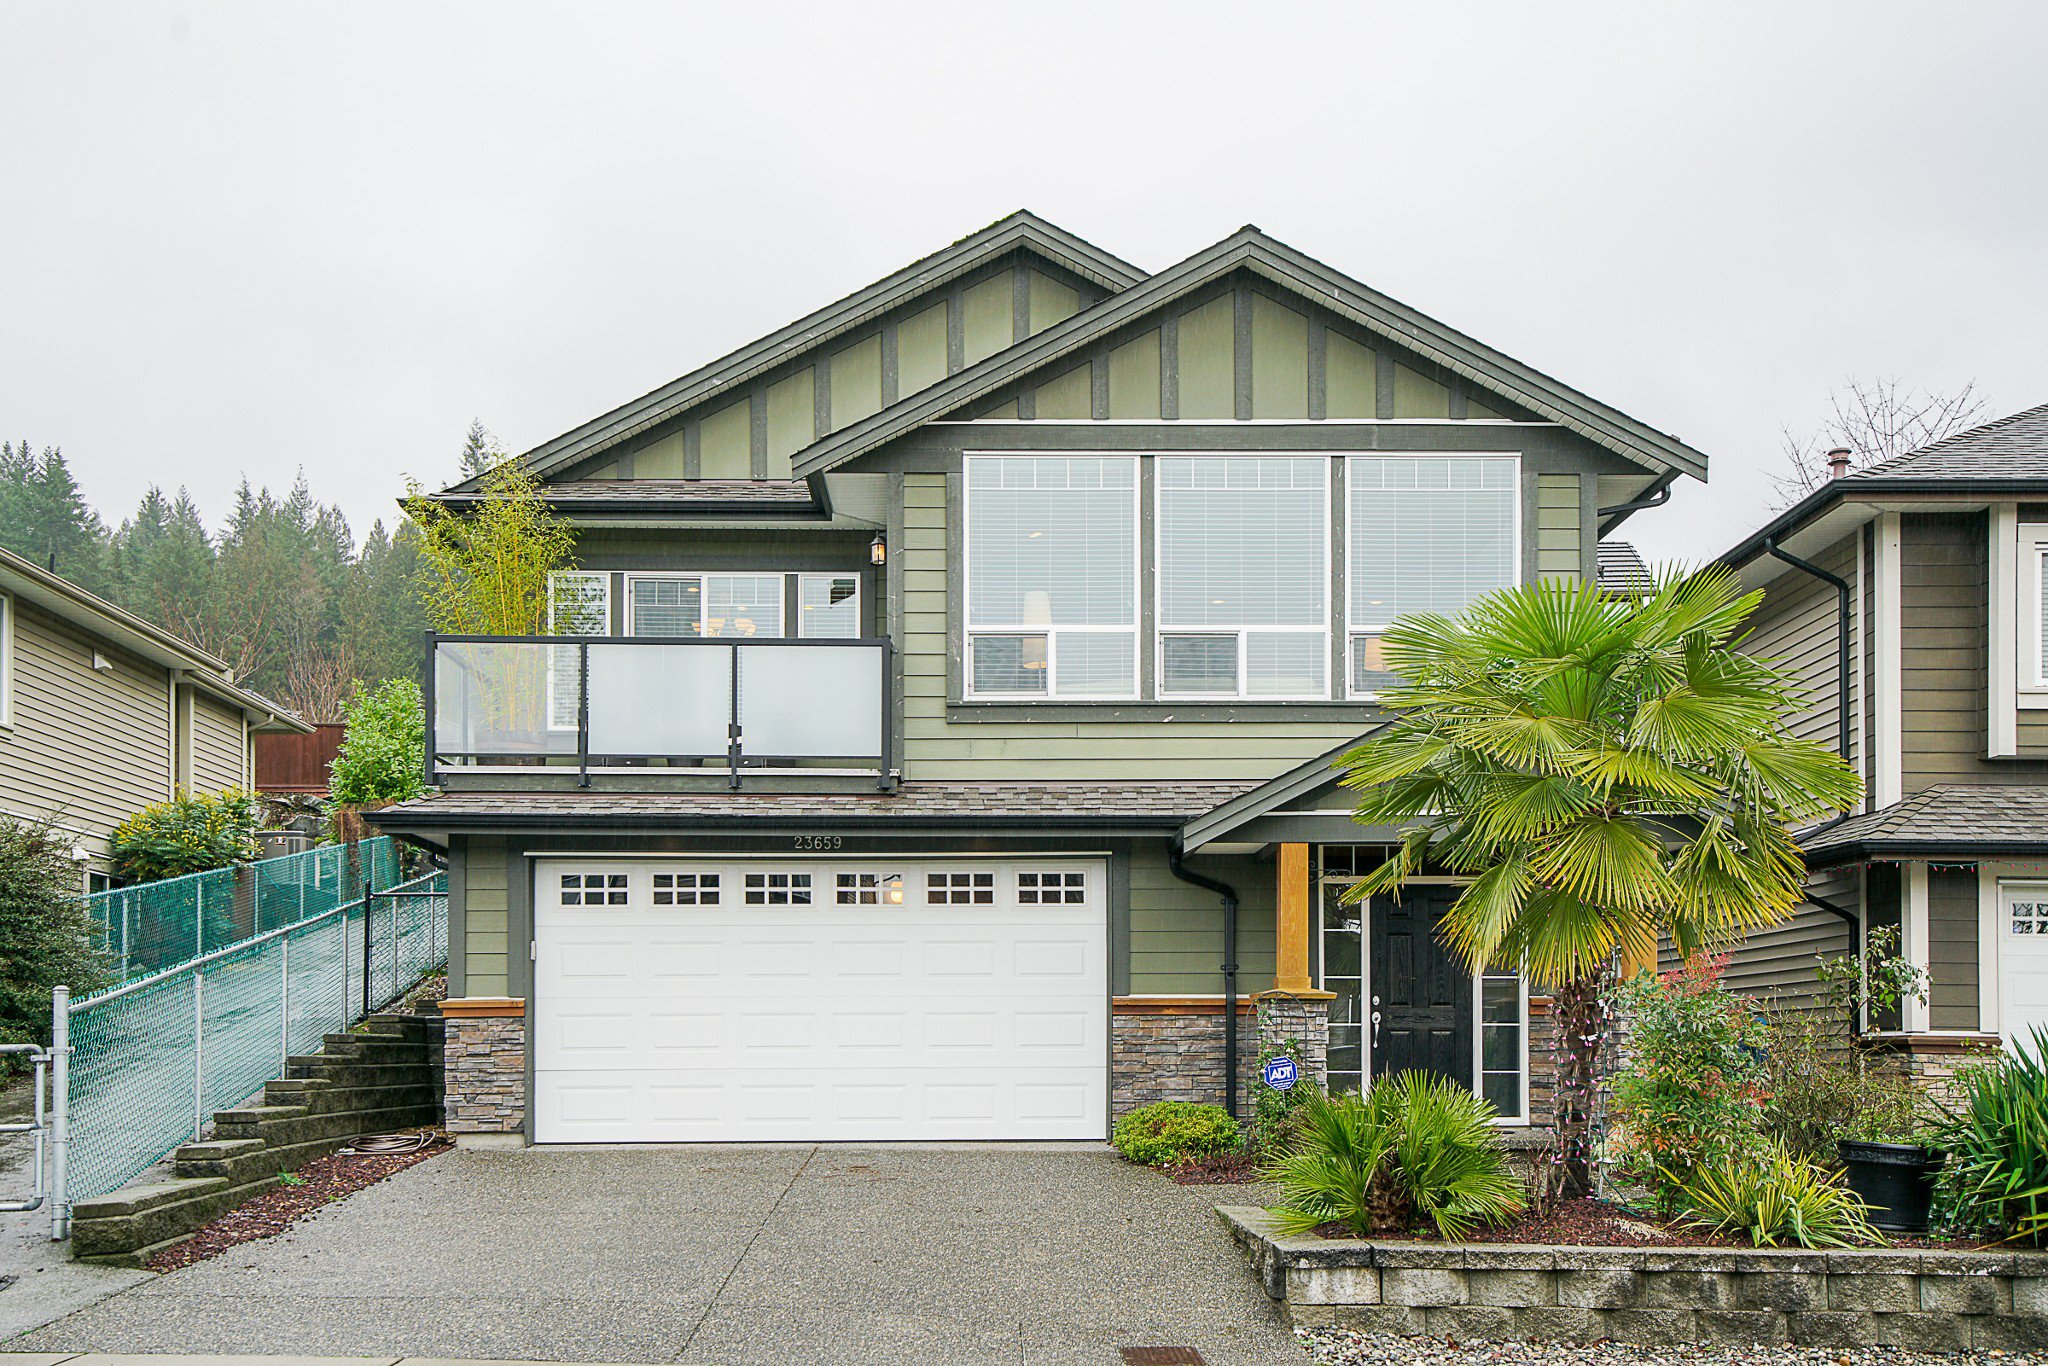 Main Photo: 23659 BRYANT Drive in Maple Ridge: Silver Valley House for sale : MLS®# R2239316